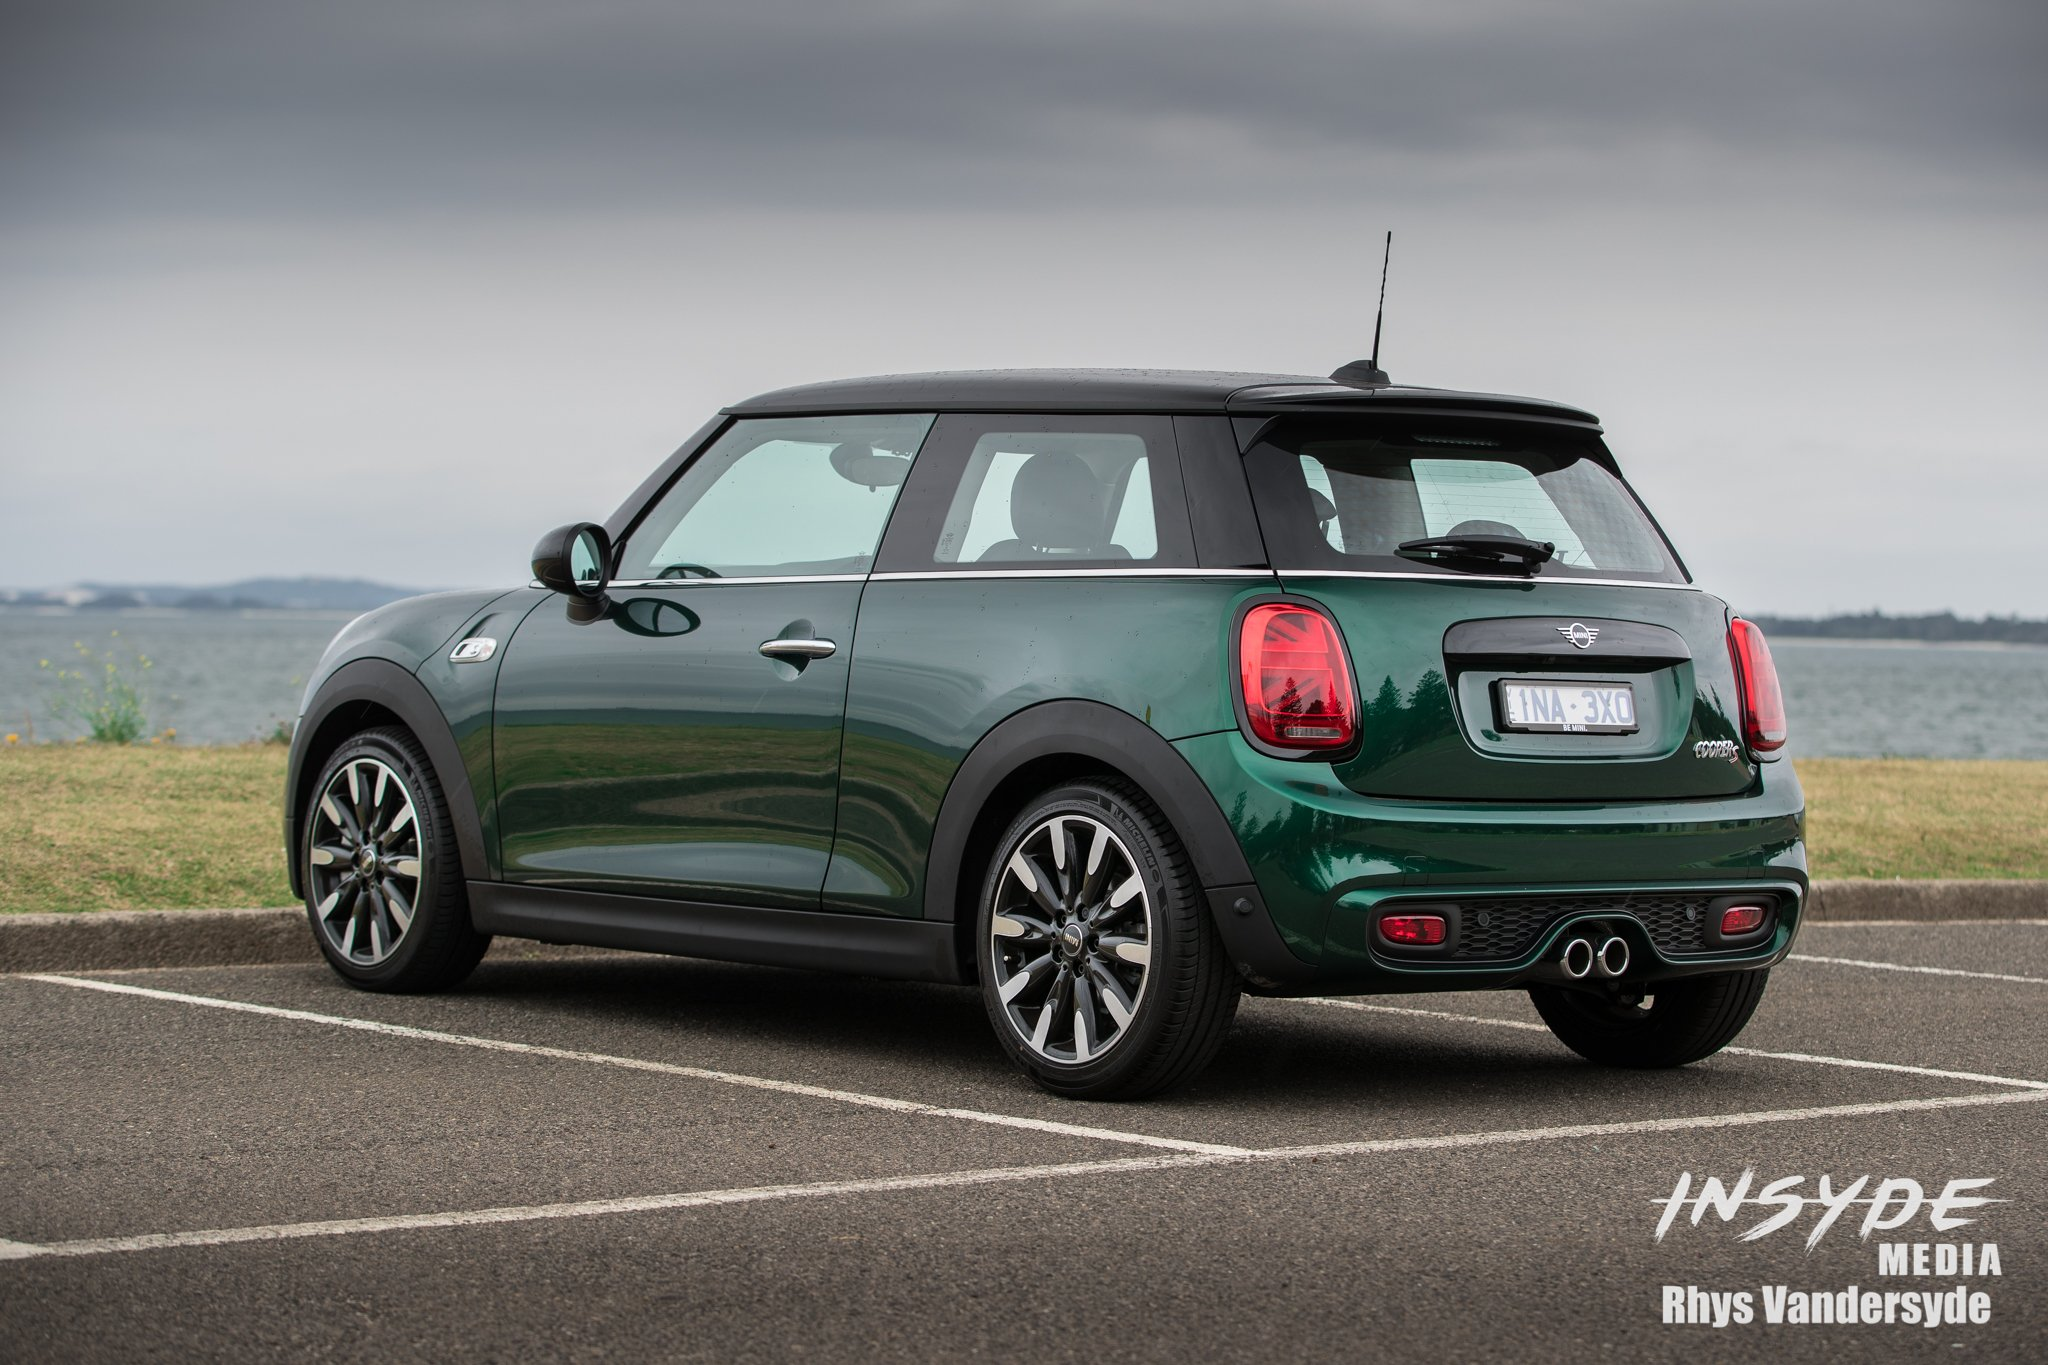 Photo Shoot: Mini Cooper S